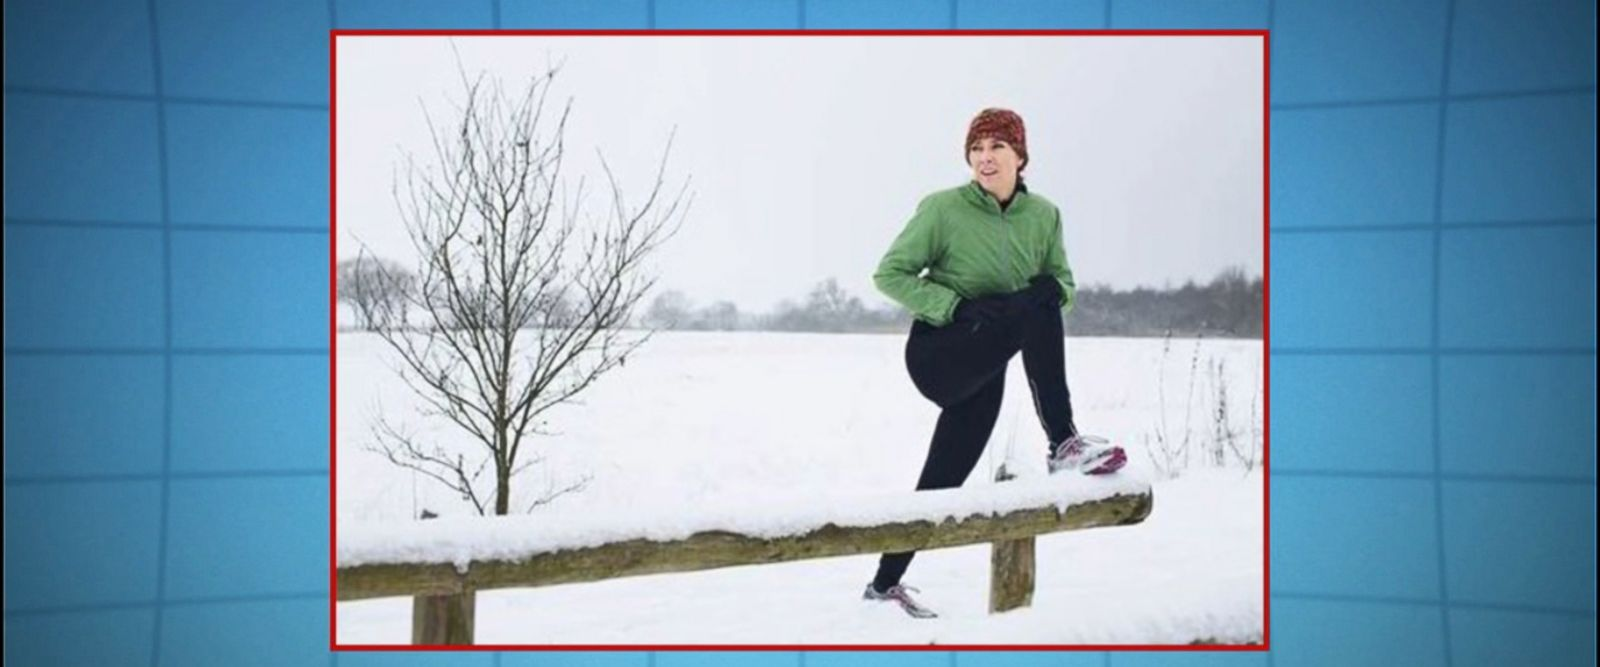 VIDEO: No one likes to be cold enough to shiver, but what if being cold could actually increase your metabolism, improve blood sugar and help you lose weight?